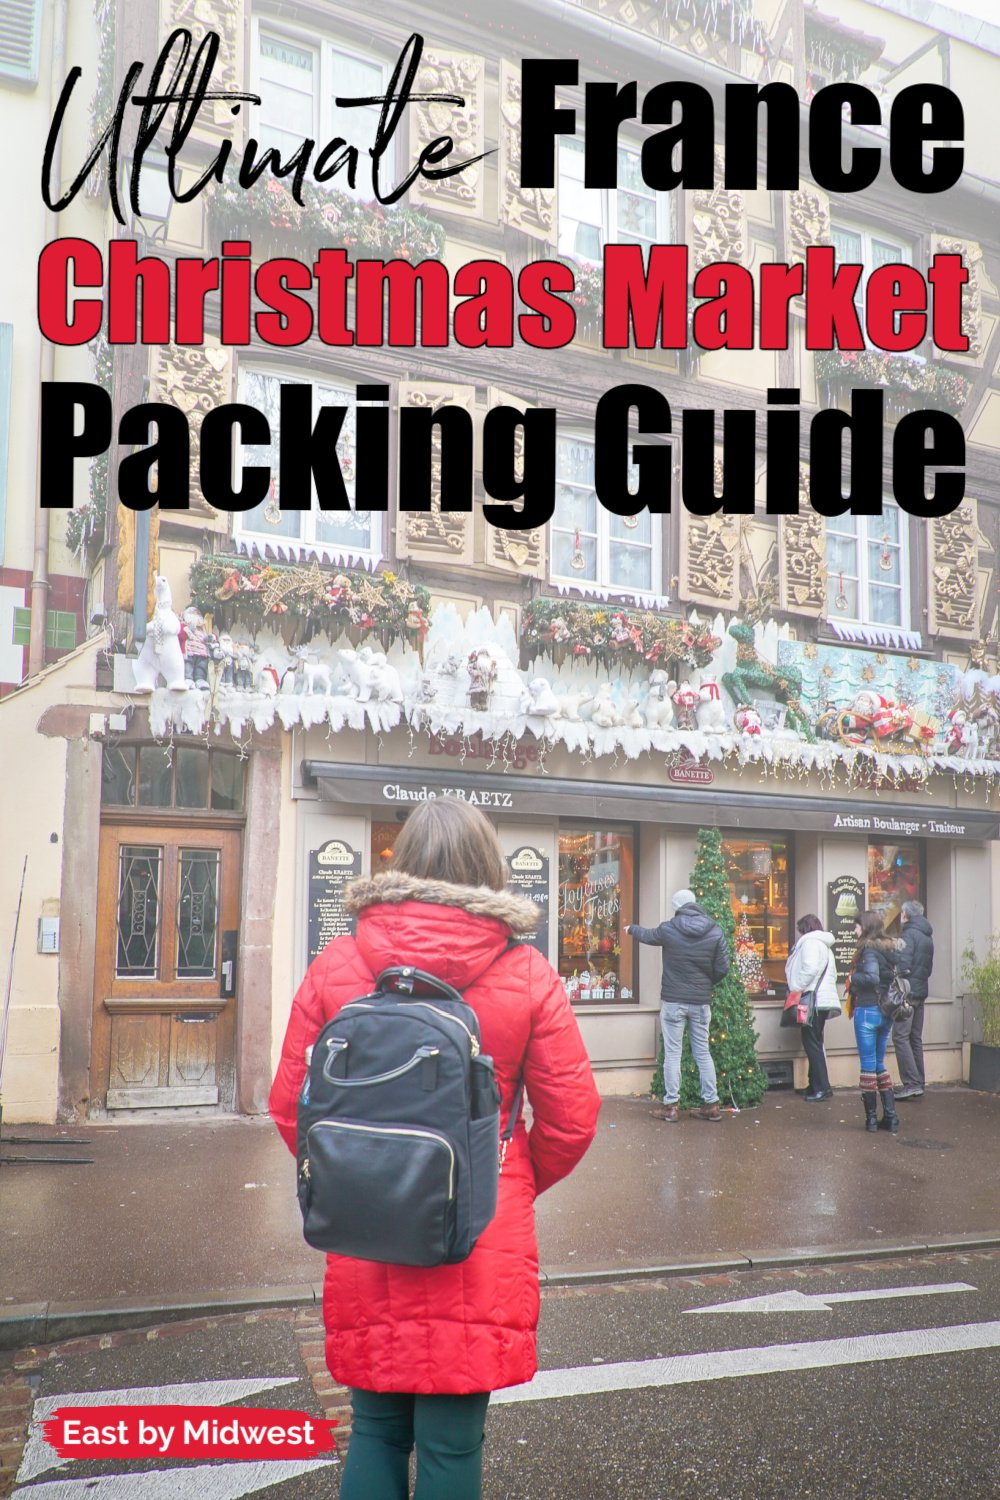 France Christmas Market Packing Guide: What You Need to Pack